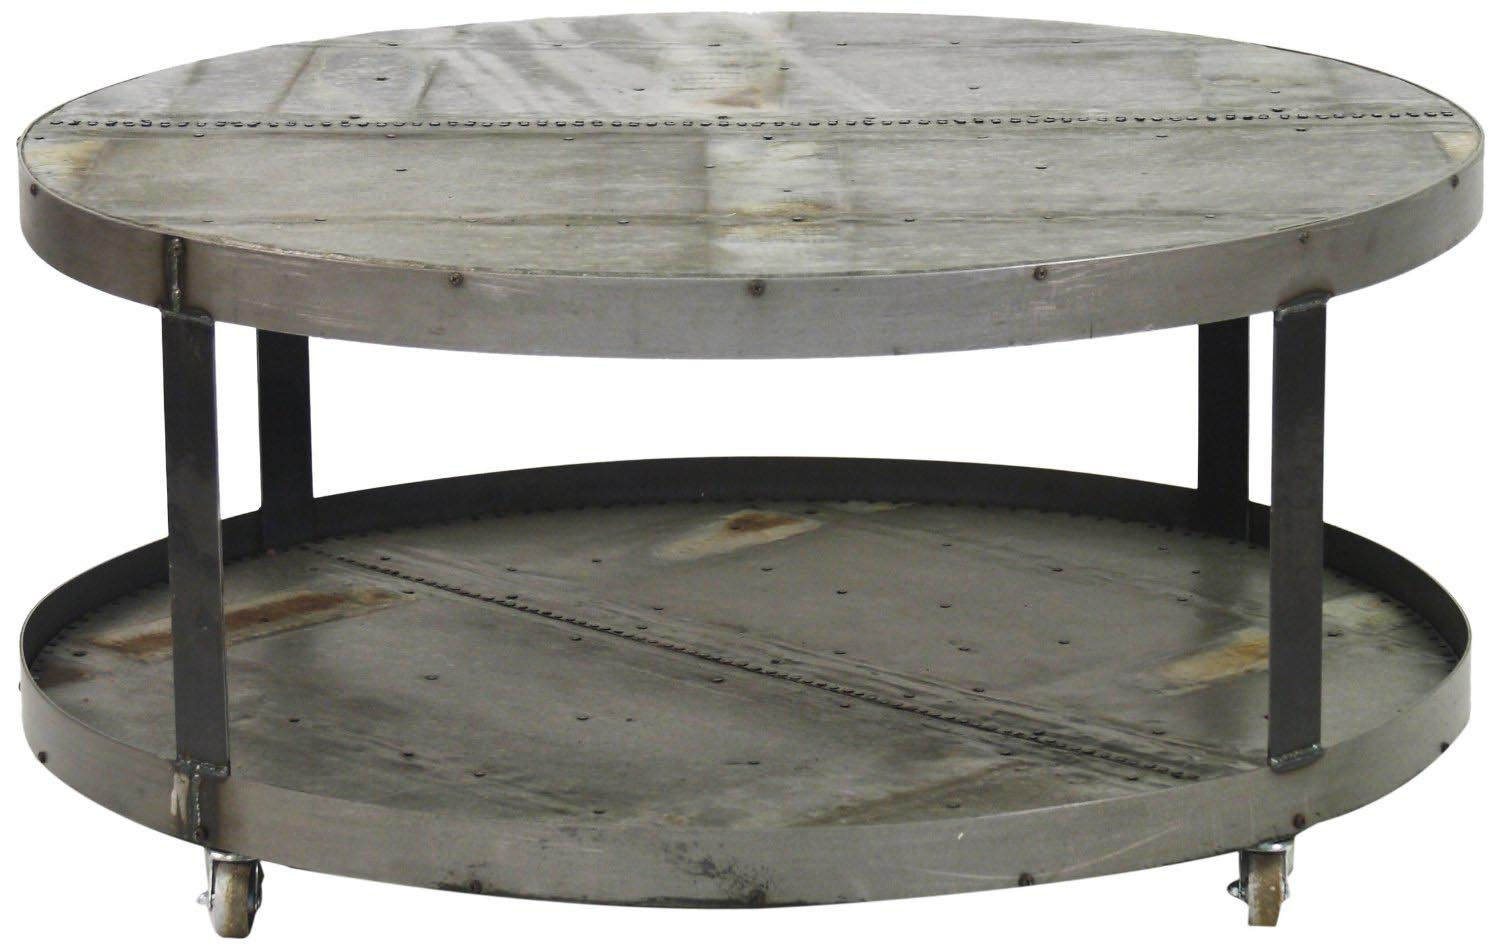 Oversized round coffee table coffee table design ideas for Table circle